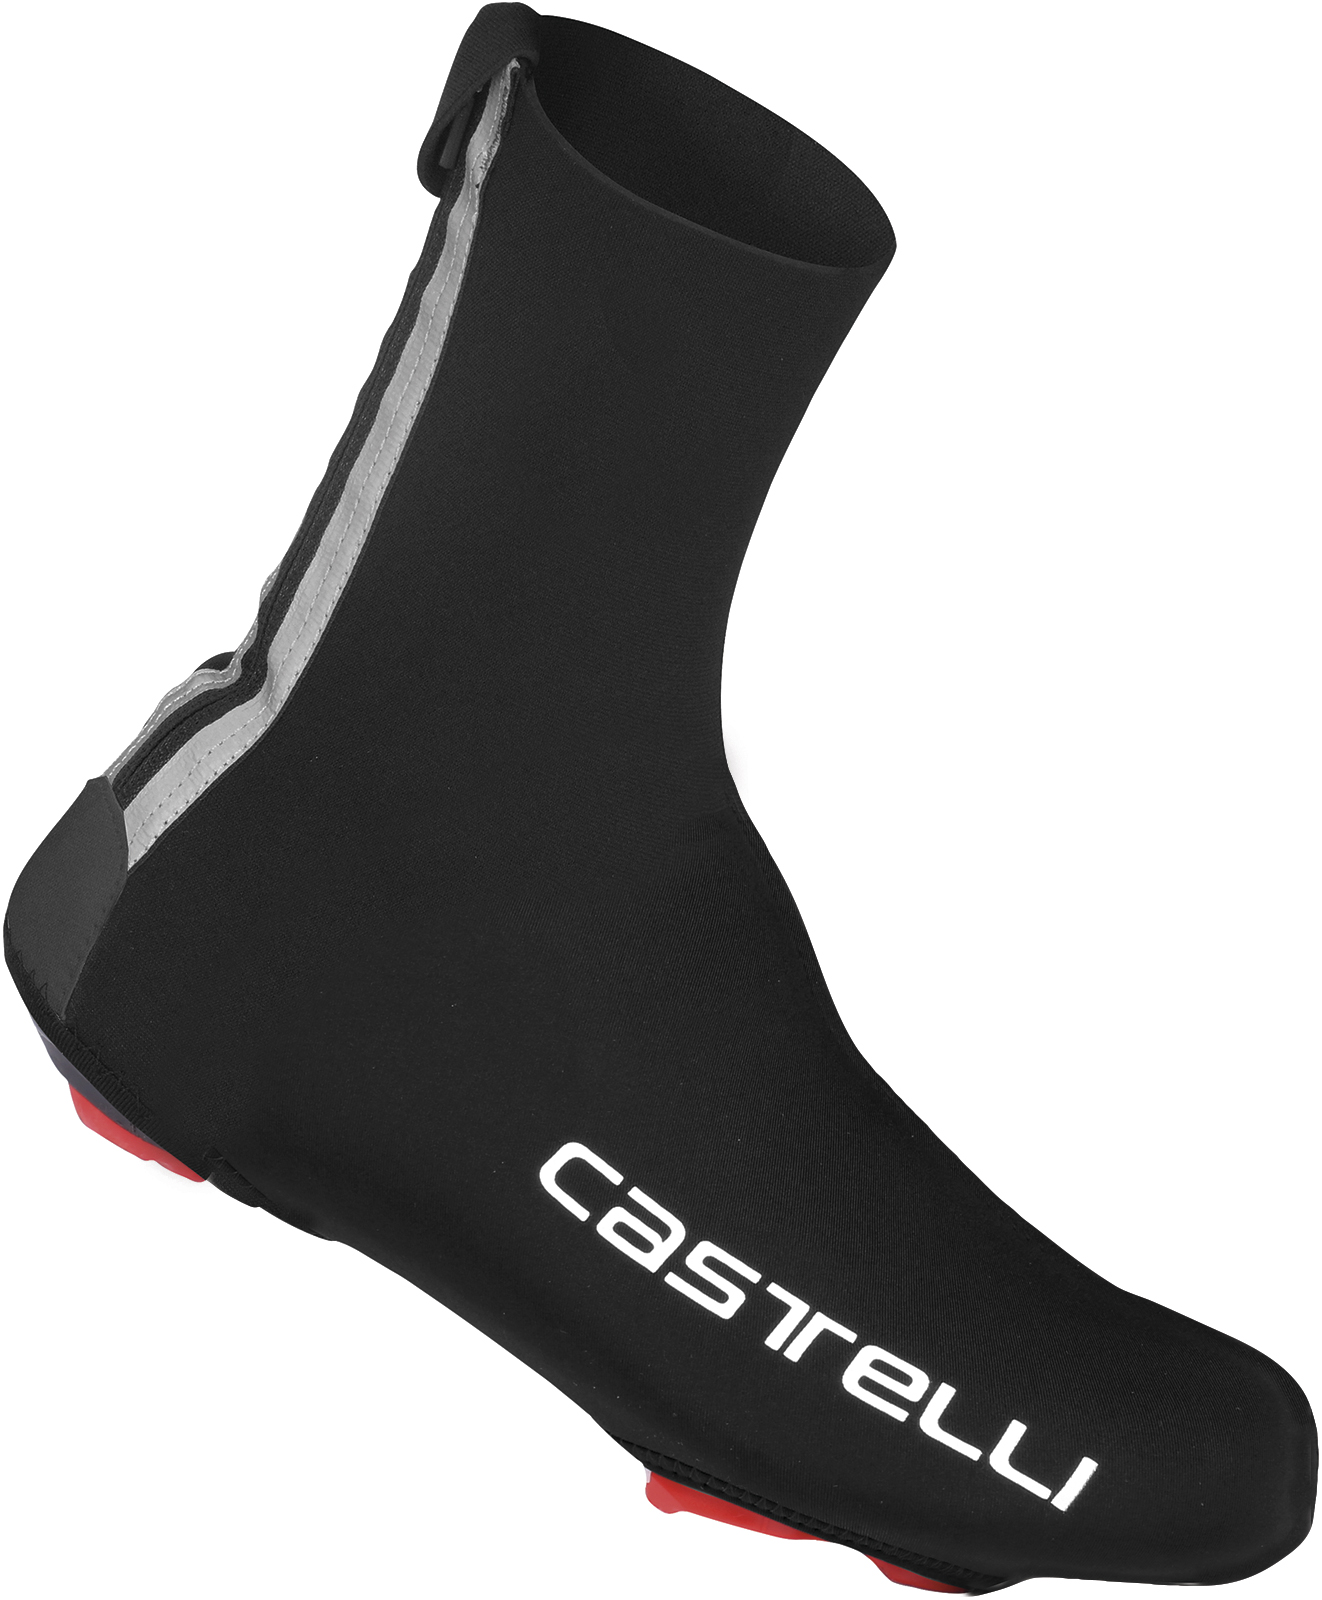 Couvre chaussures Castelli Diluvio Shoecover France 16 Wiggle France Shoecover 5b72d2